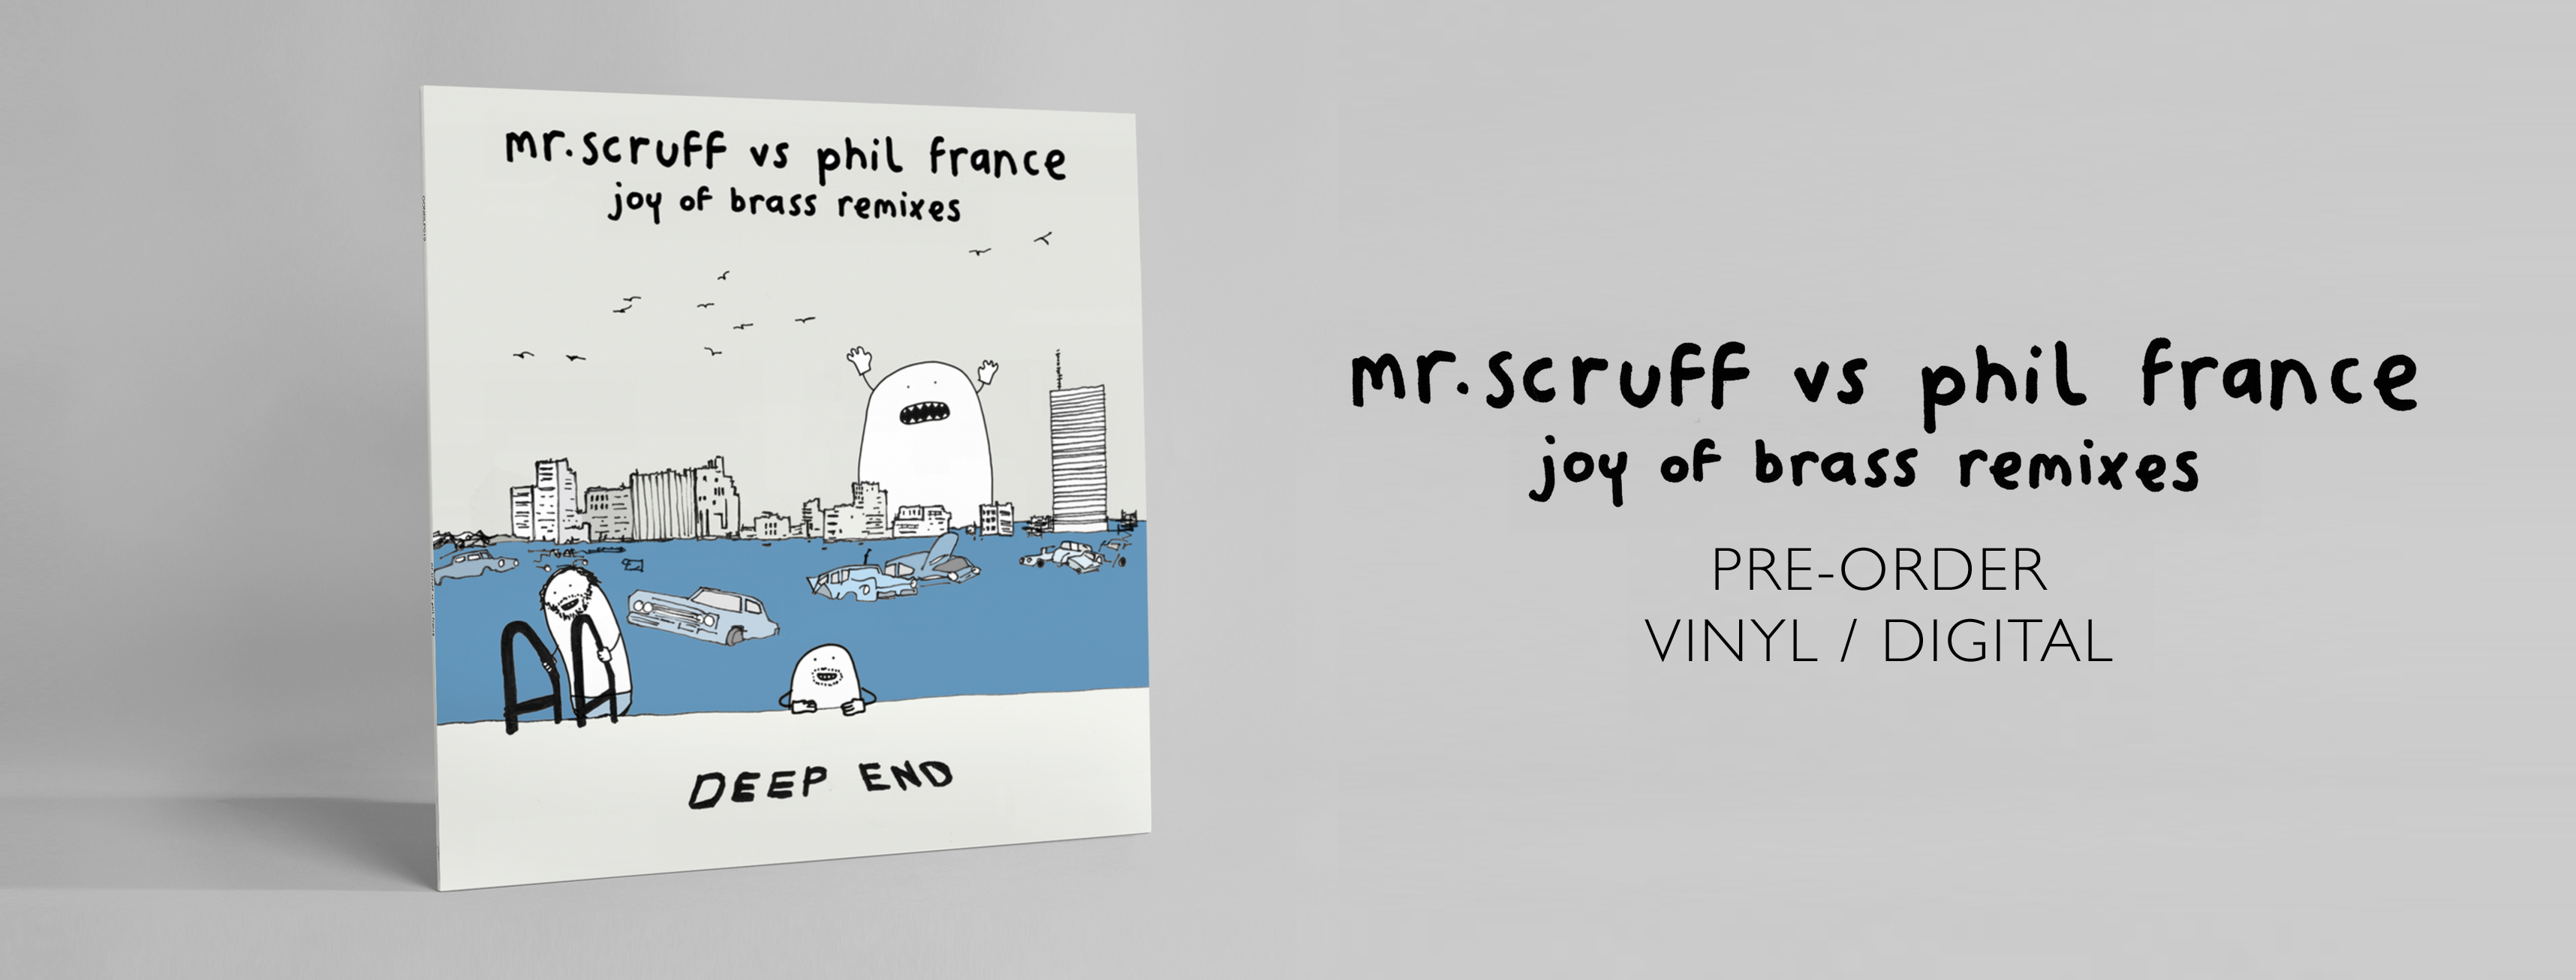 Mr. Scruff Vs Phil France Joy of Brass (Facebook Banner) PRE-ORDER